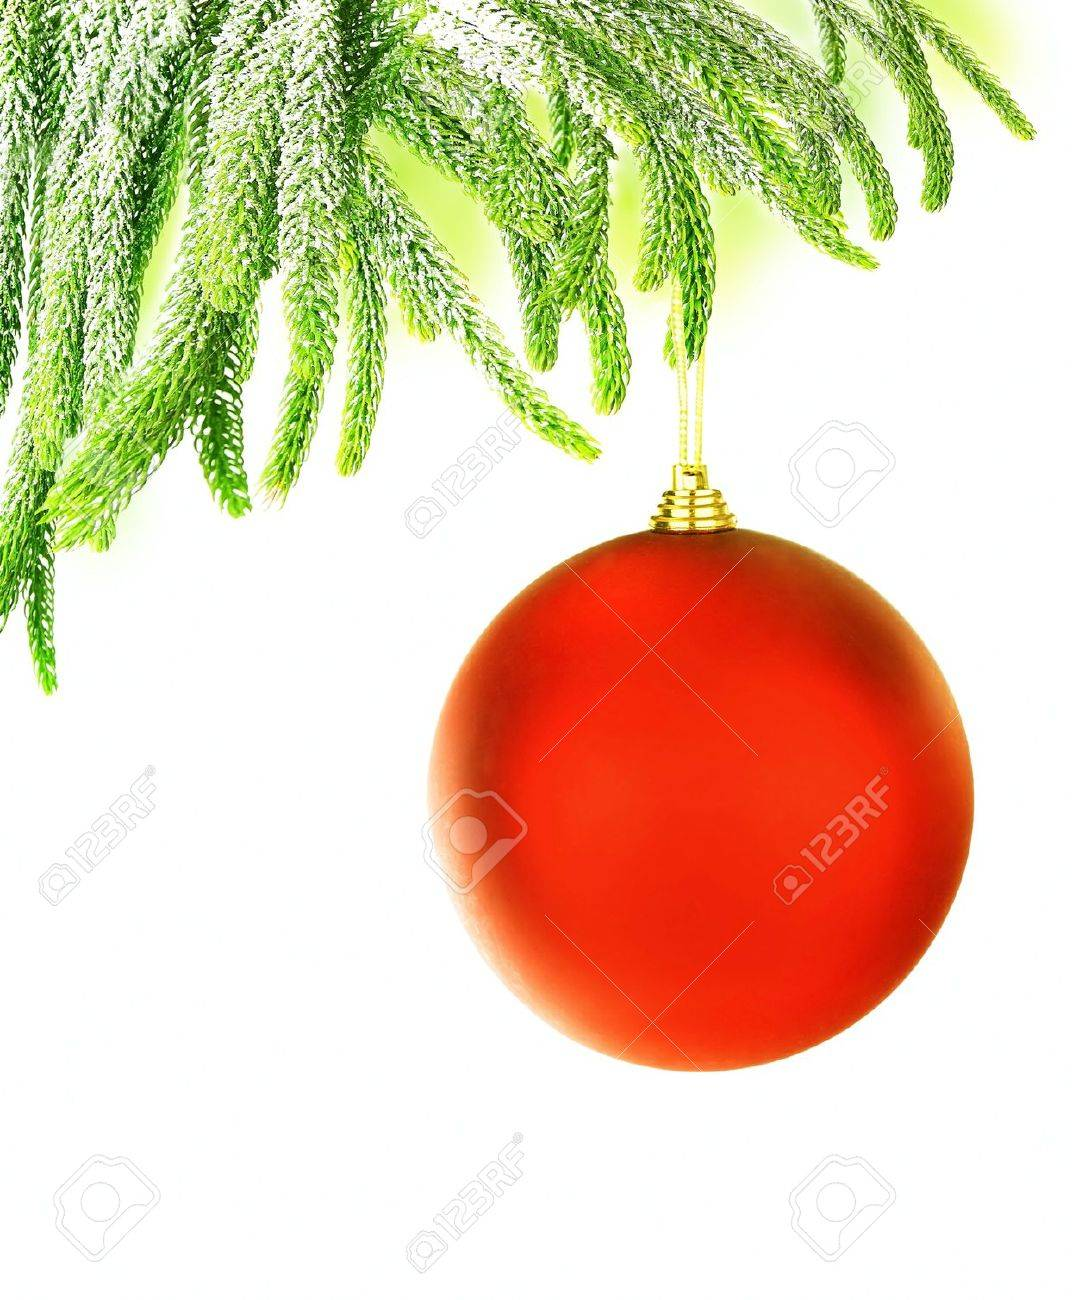 Christmas tree green border with big red hanged bauble, traditional ornament and decoration for winter holidays, isolated on white background Stock Photo - 11600174